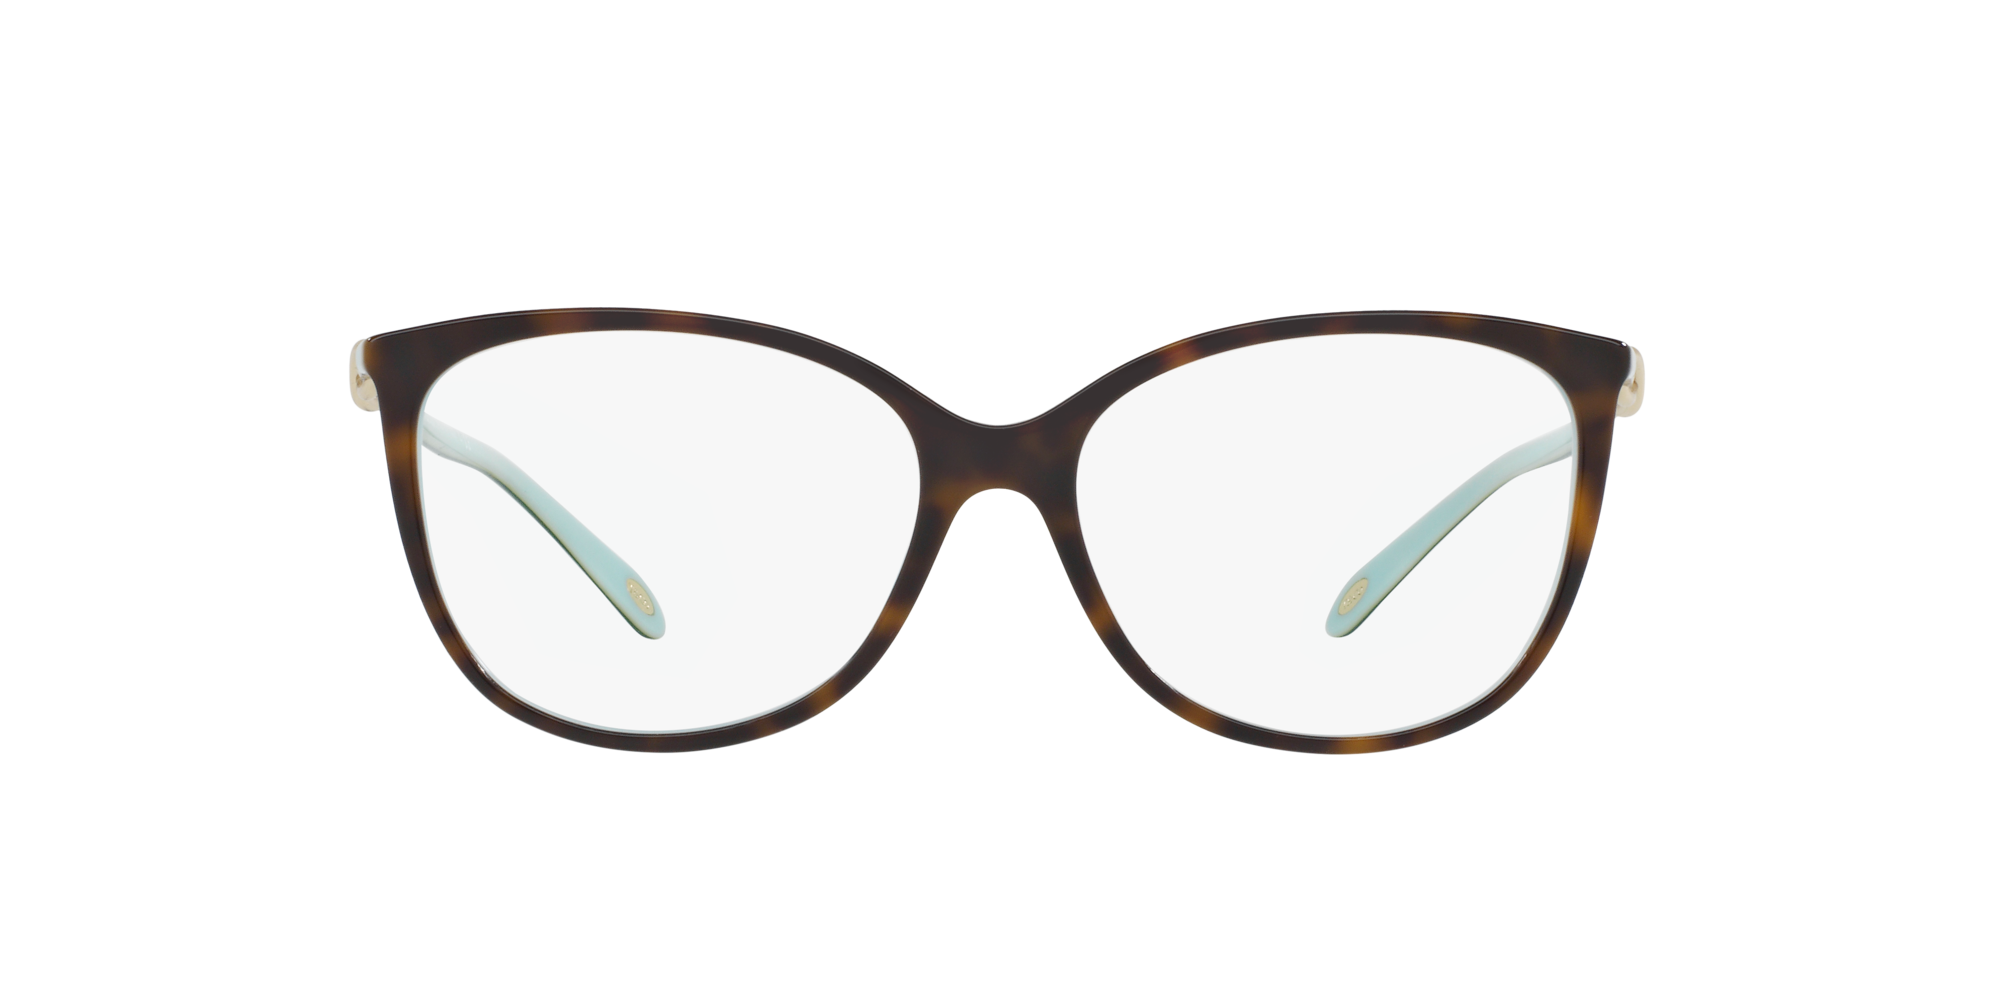 Image for TF2143B from LensCrafters | Glasses, Prescription Glasses Online, Eyewear